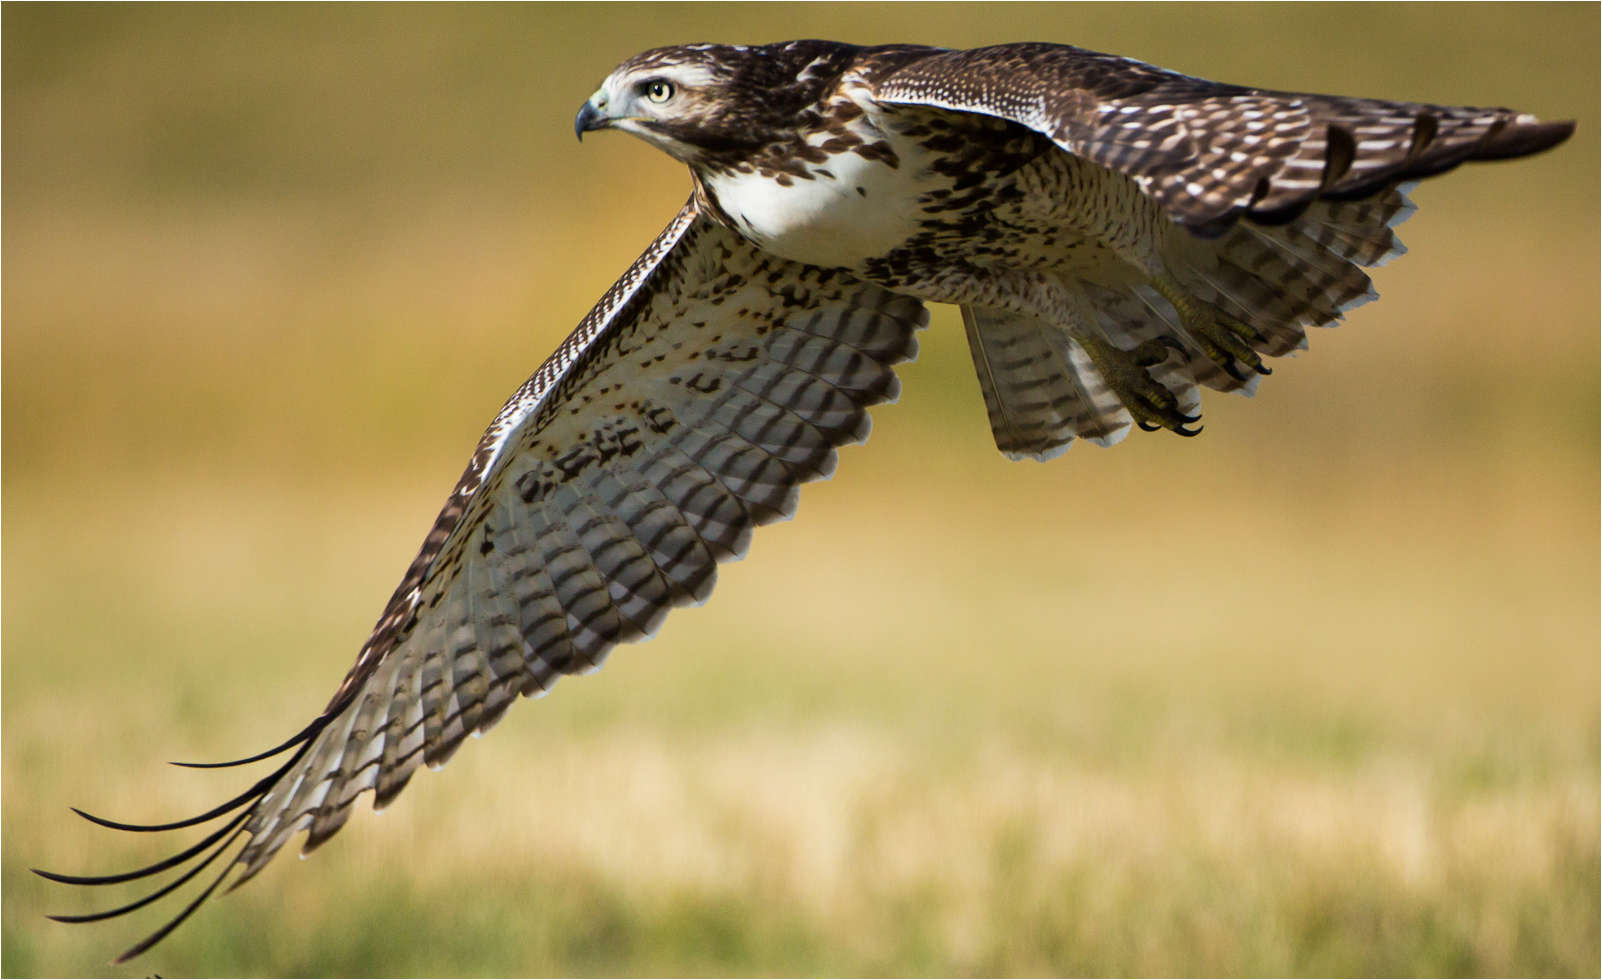 Photograph Red-tailed hawk downstroke by Christopher Martin on 500px